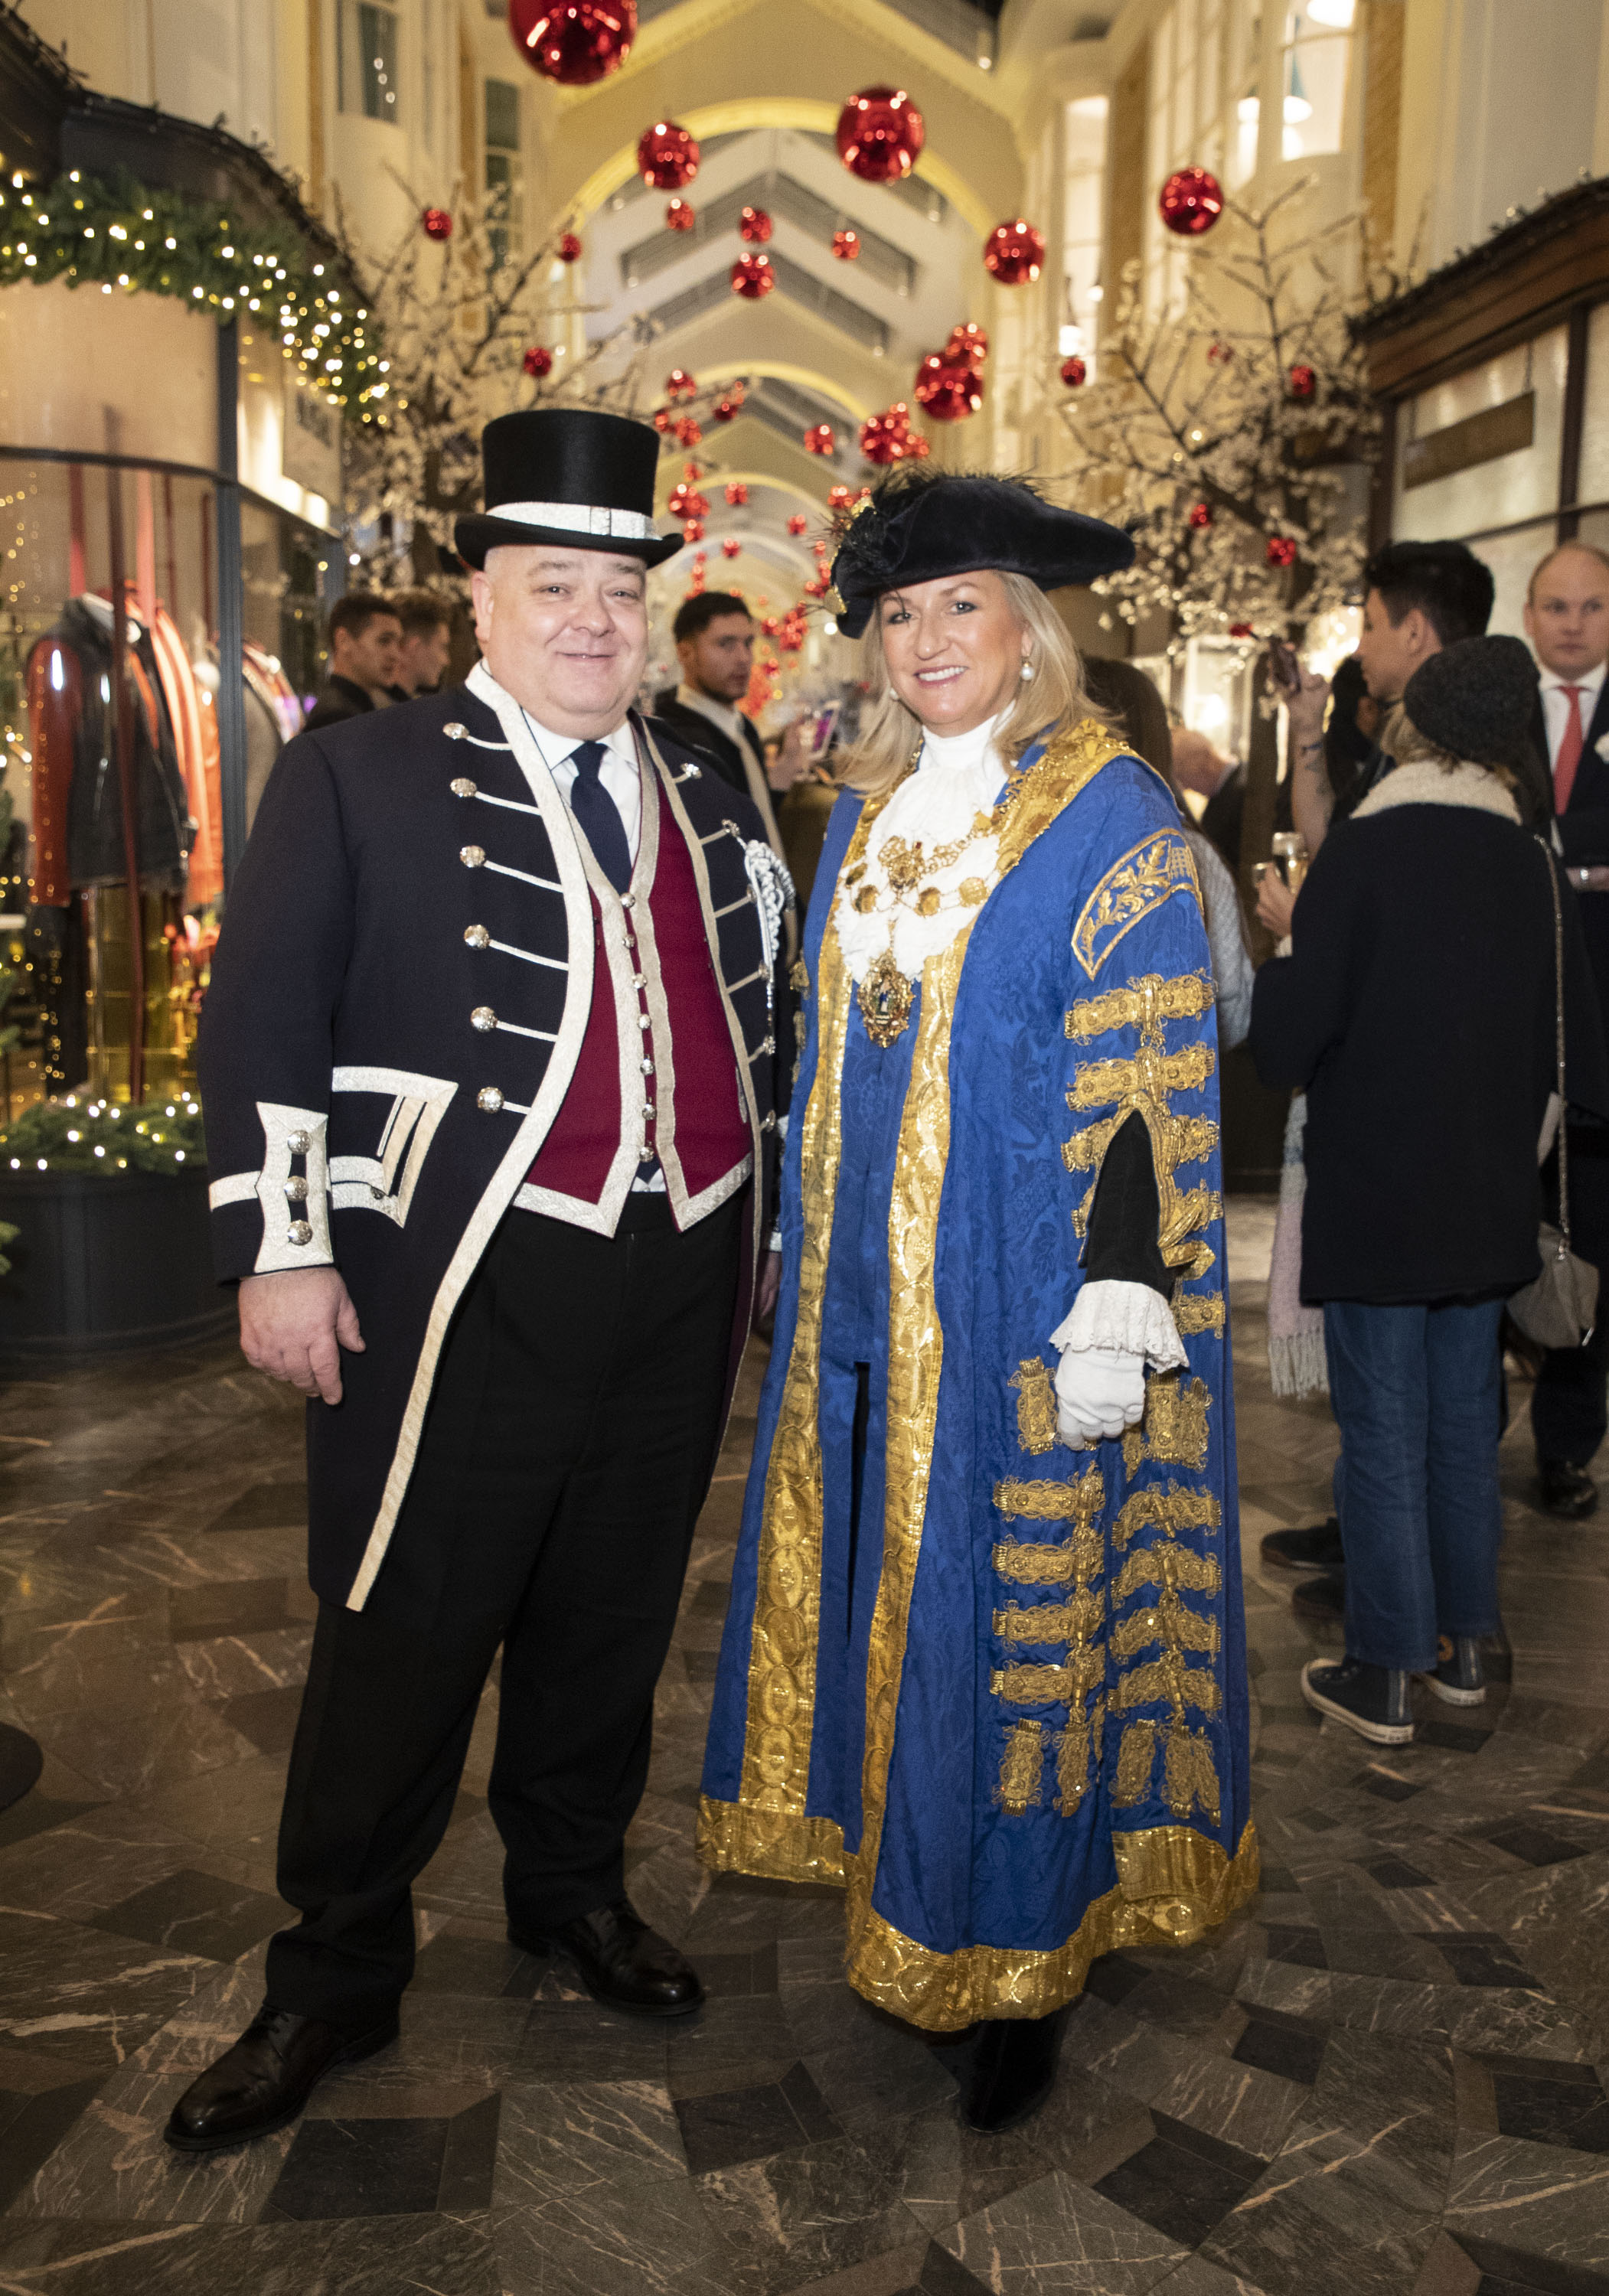 Mark Lord, Head Beadle at Burlington Arcade, and The Right Worshipful Lord Mayor of Westminster Councillor Lindsey Hall at Burlington Arcade, Chritsmas Lights.JPG